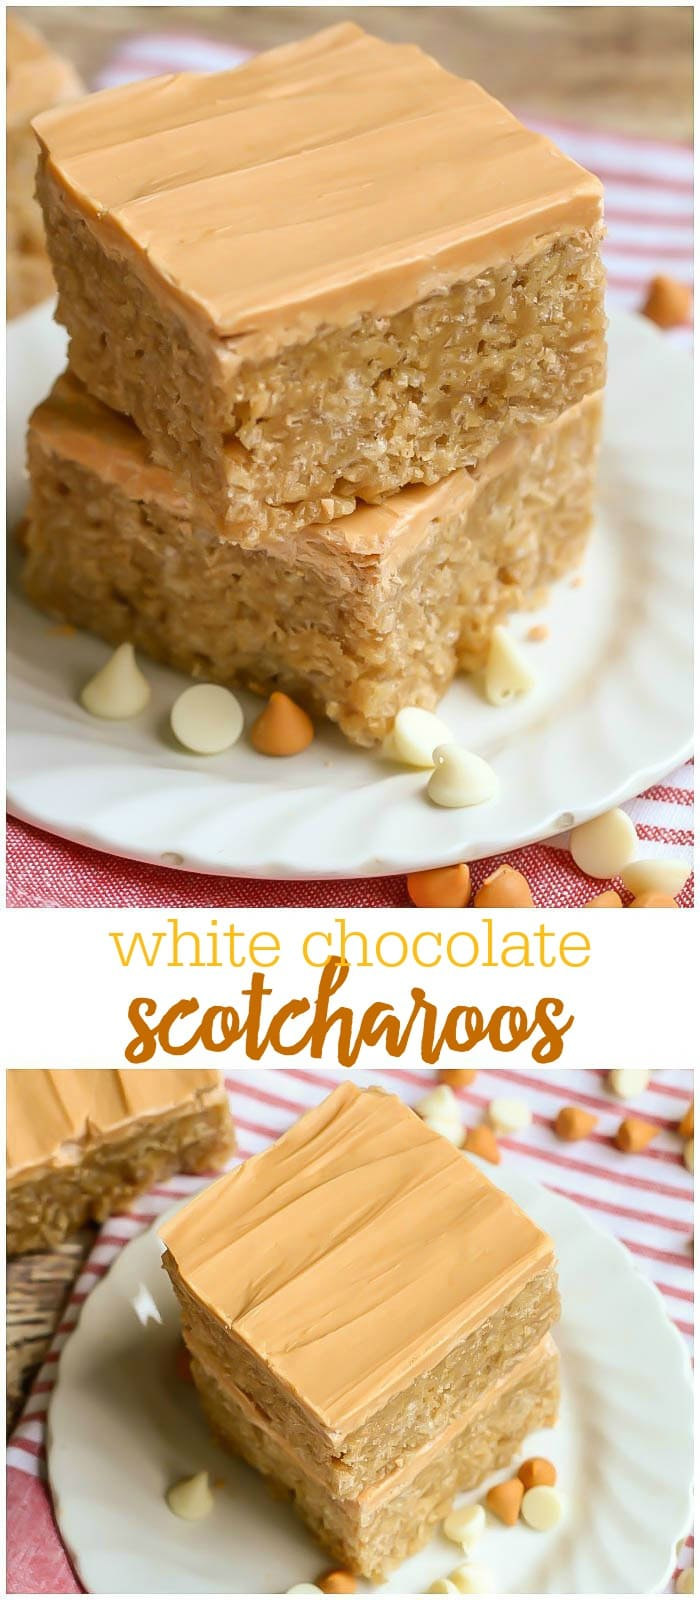 The yummiest White Chocolate Scotcharoos!! These easy Peanut butter rice krispies have a white chocolate & butterscotch frosting!